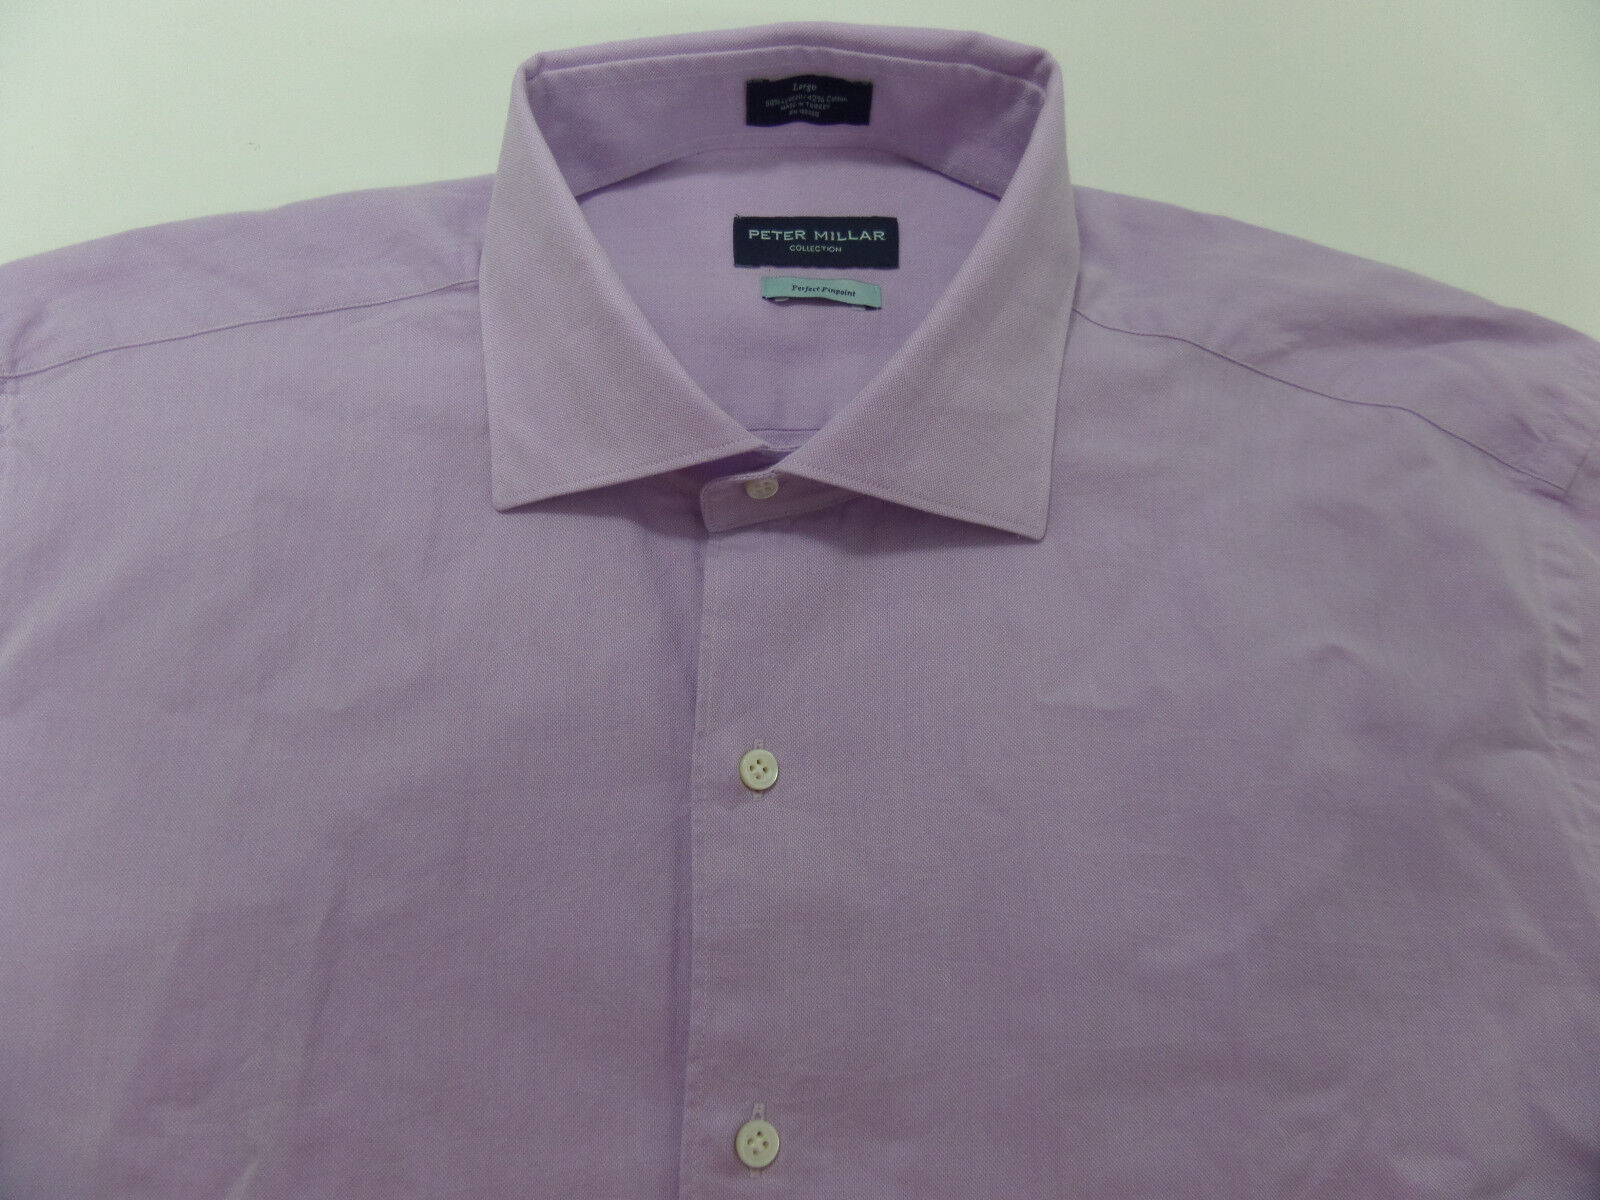 Peter Millar Perfect Pinpoint Button Front Shirt Mens Large Retail